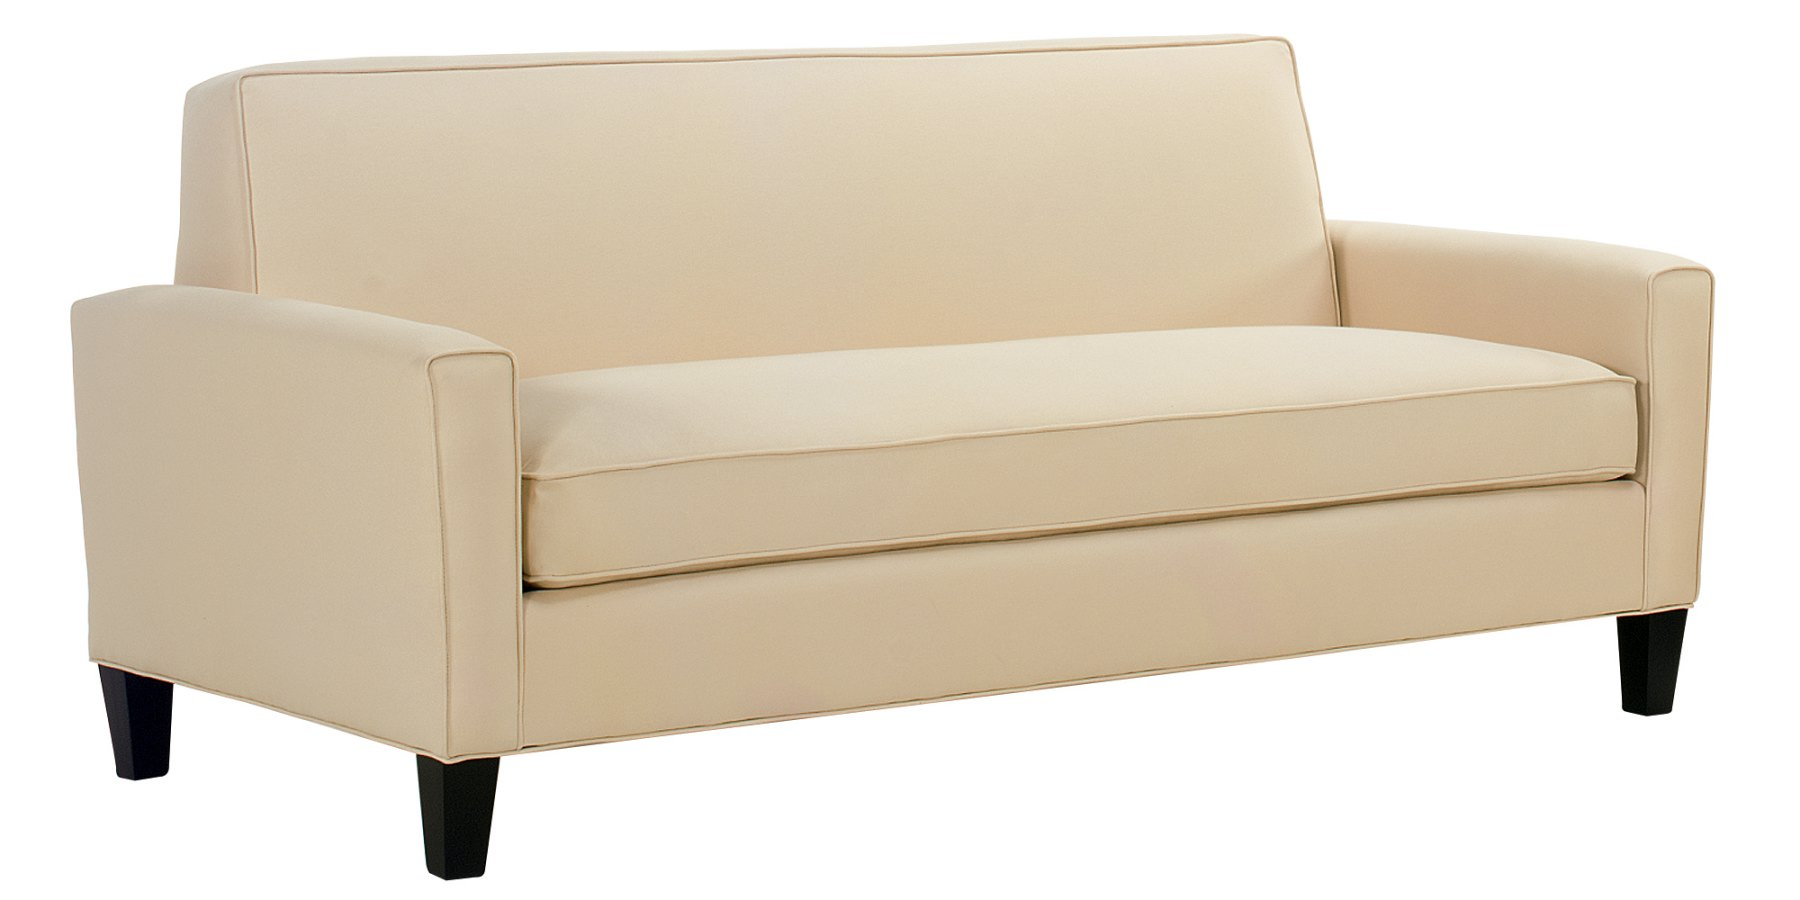 Contemporary Living Room Furniture With Bench Seat Club